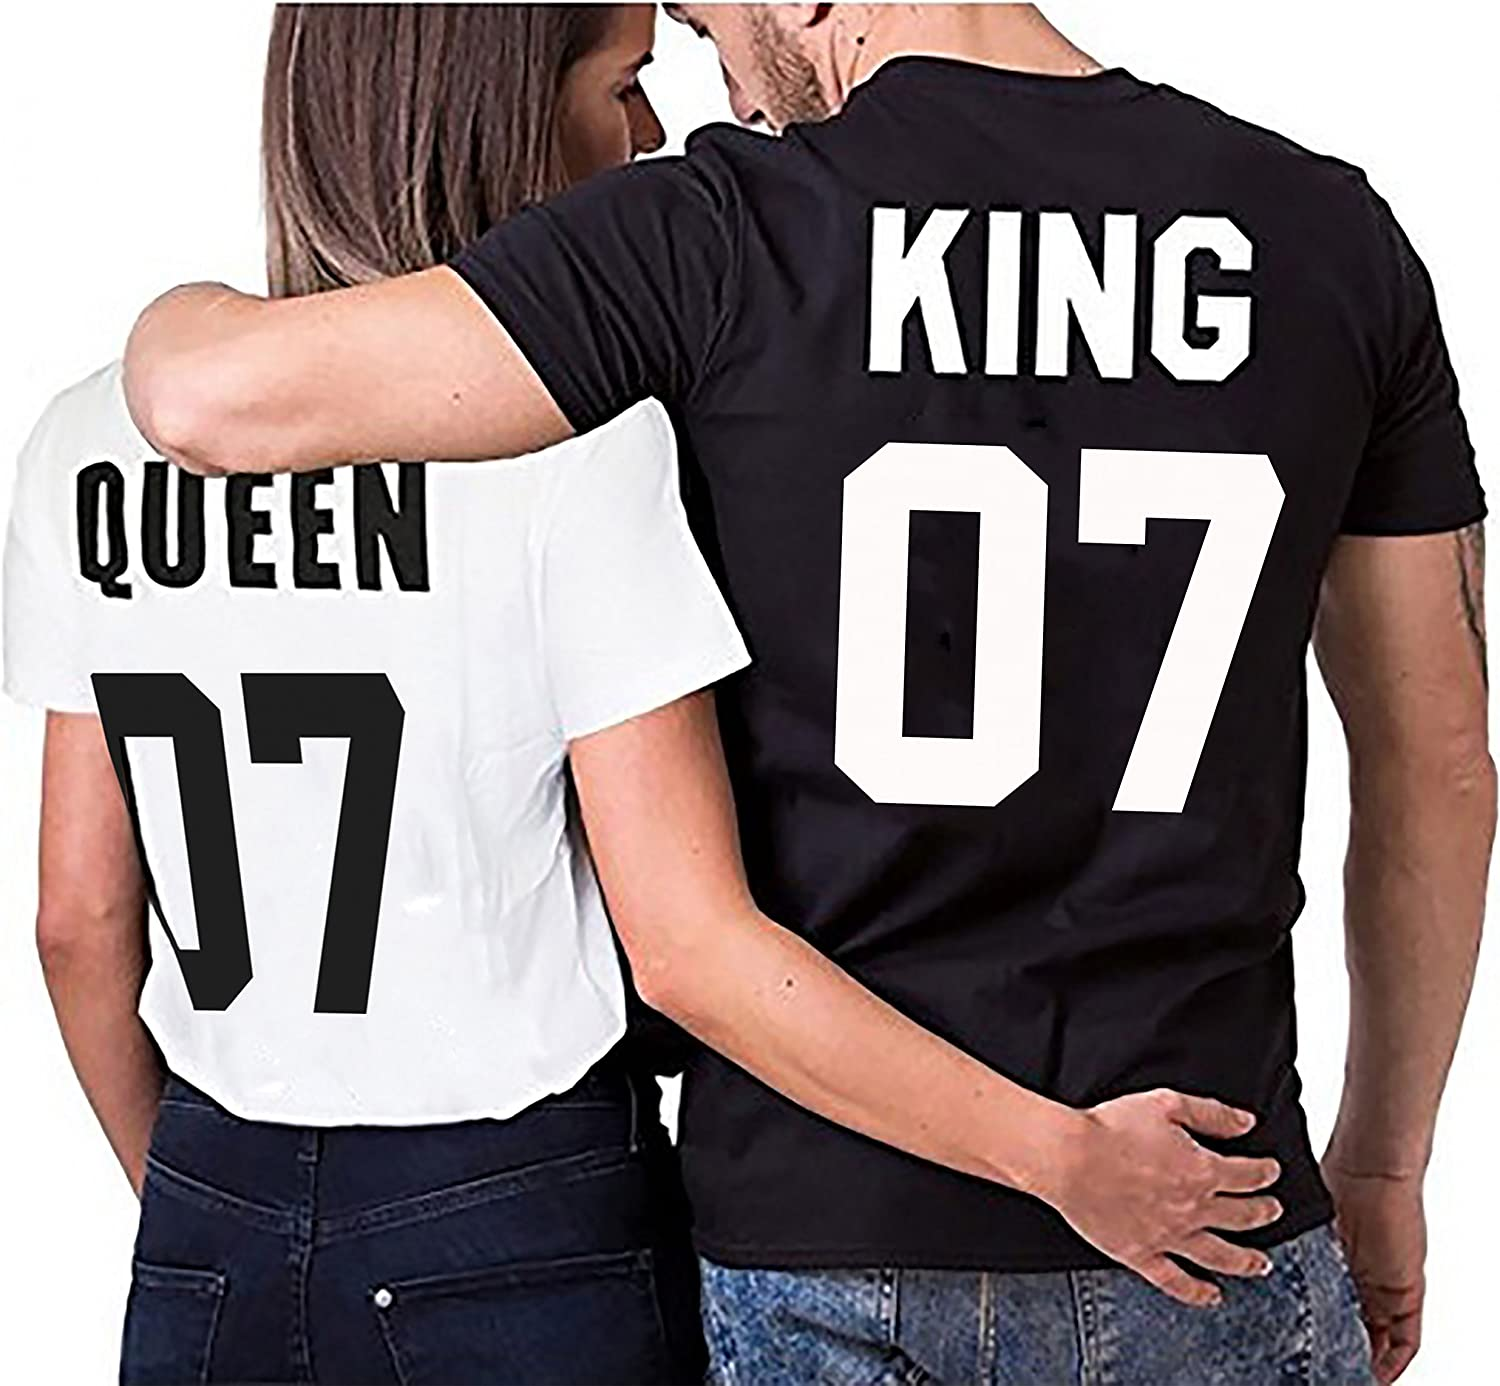 Camiseta par Partnerlook Juego King Queen para Parejas como obsequio S-4XL